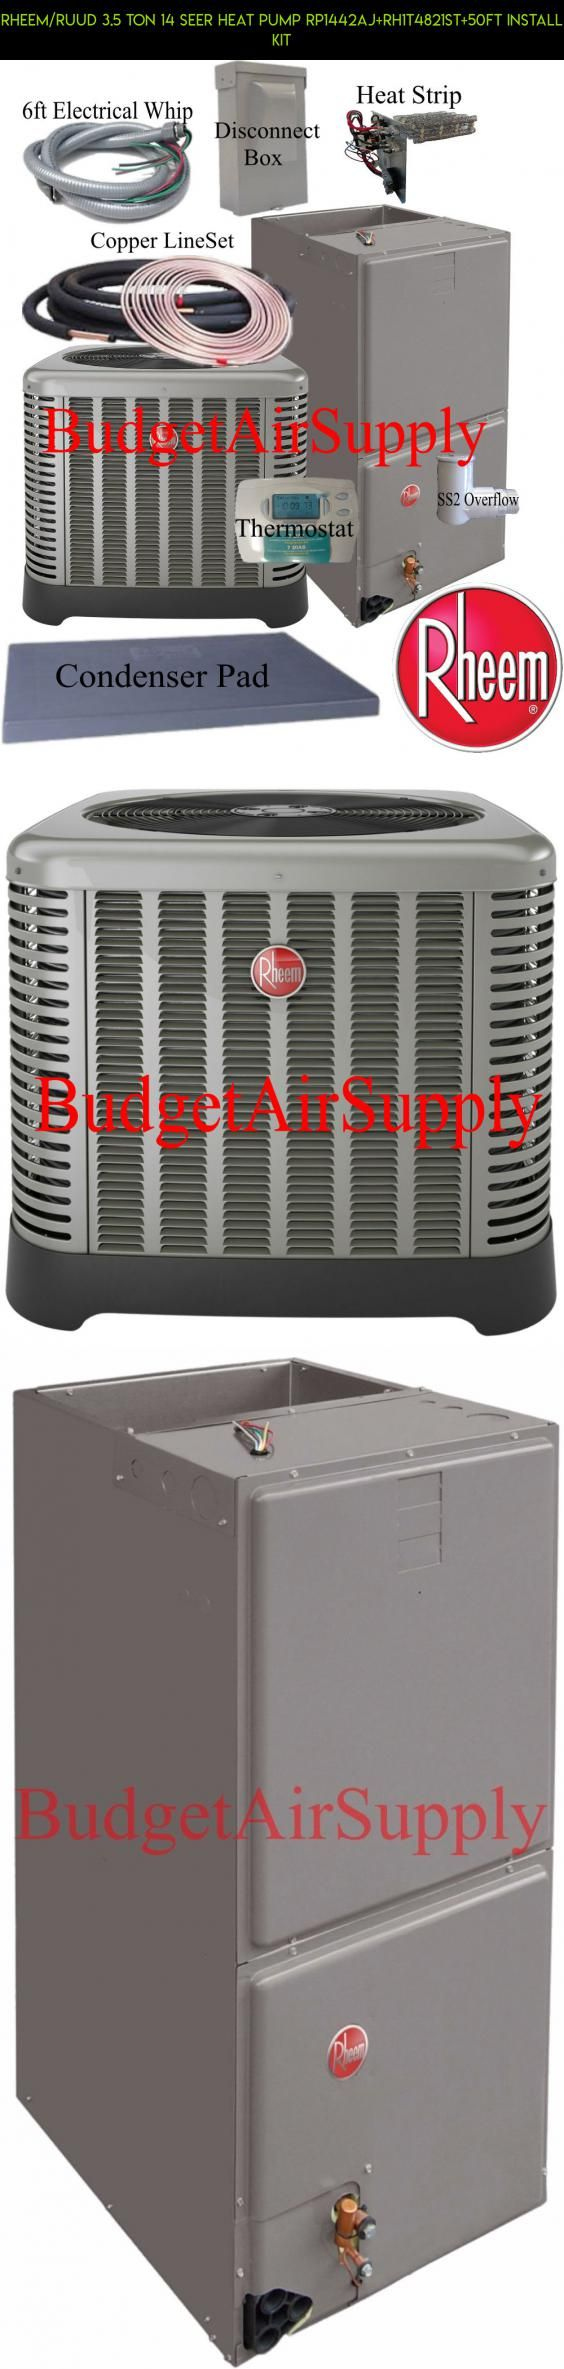 Average cost of new furnace and ac for home - Rheem Ruud 3 5 Ton 14 Seer Heat Pump Rp1442aj Rh1t4821st 50ft Install Kit